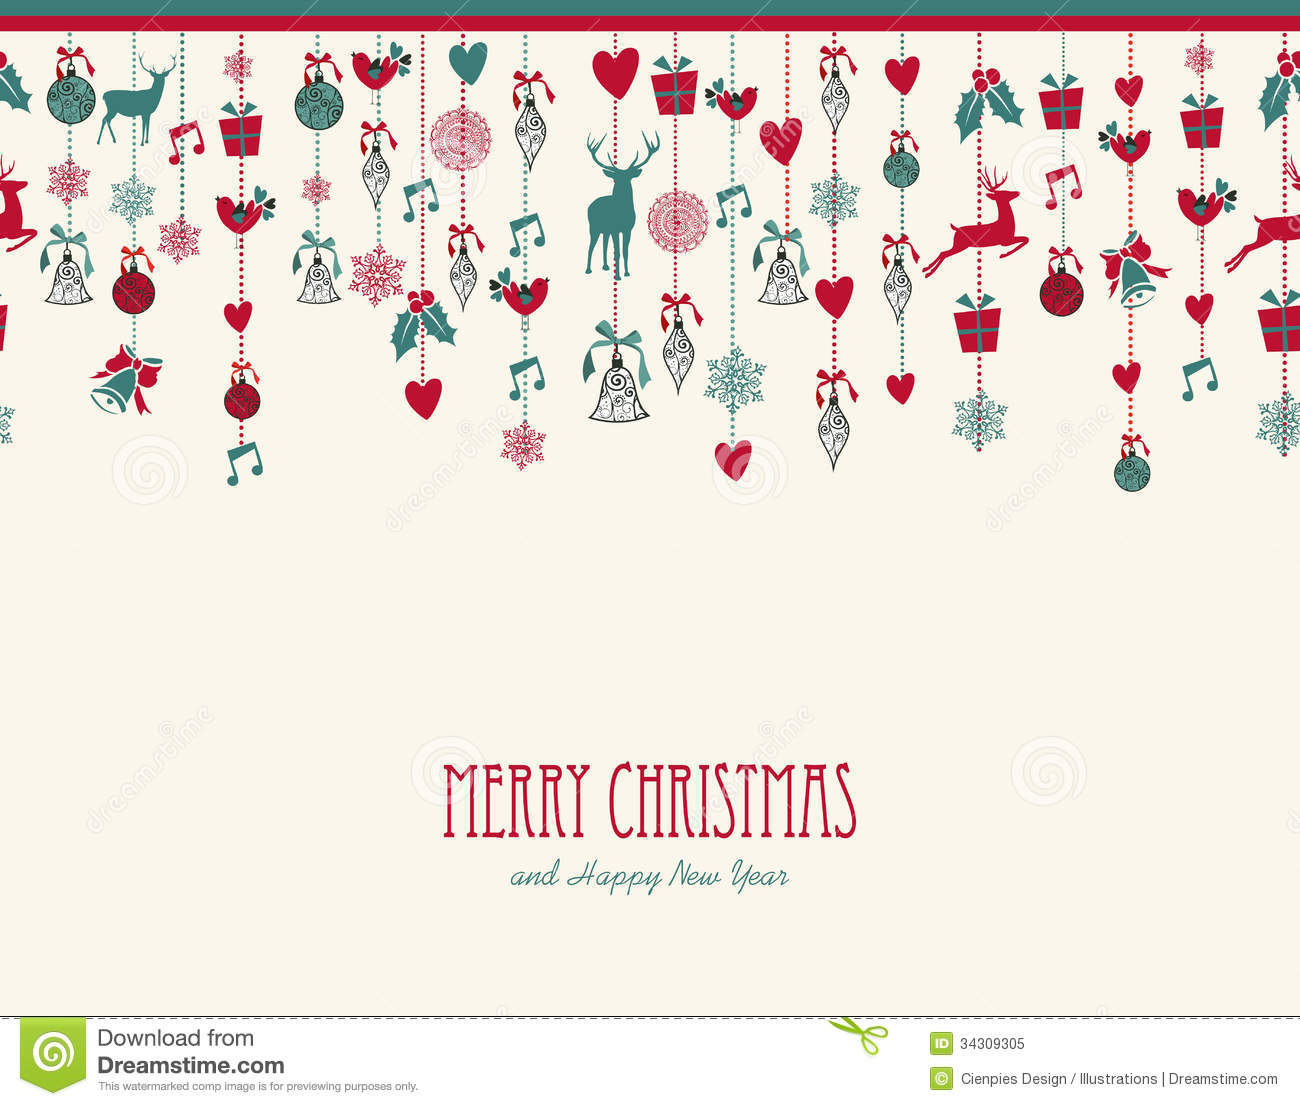 Merry Christmas hanging elements decoration compos